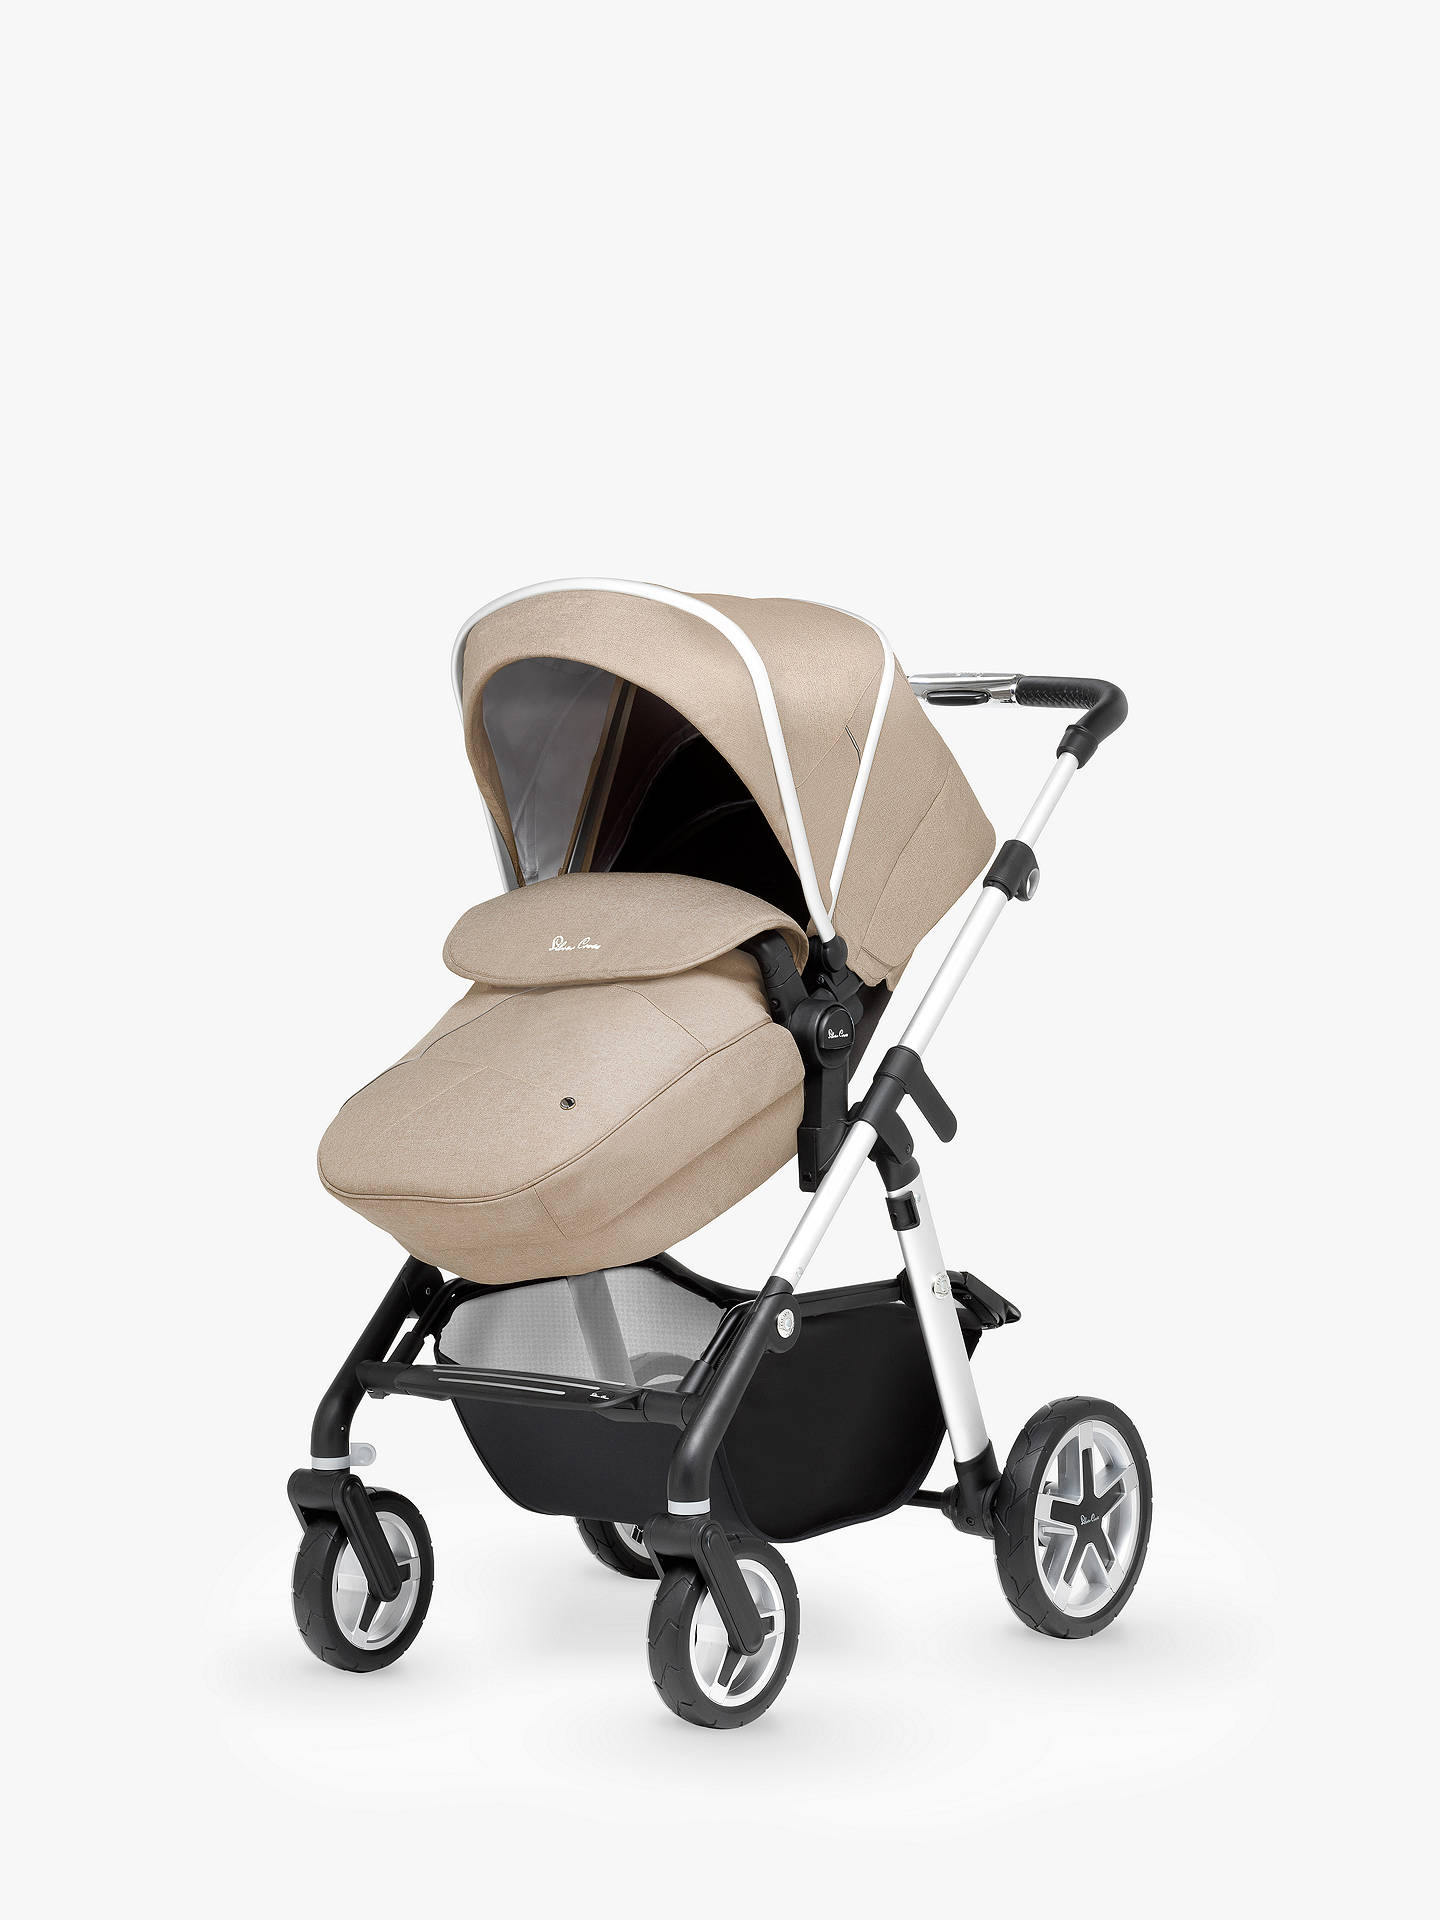 BuySilver Cross Pioneer Pushchair, Chassis, Carrycot and Essentials Pack, Linen Online at johnlewis.com